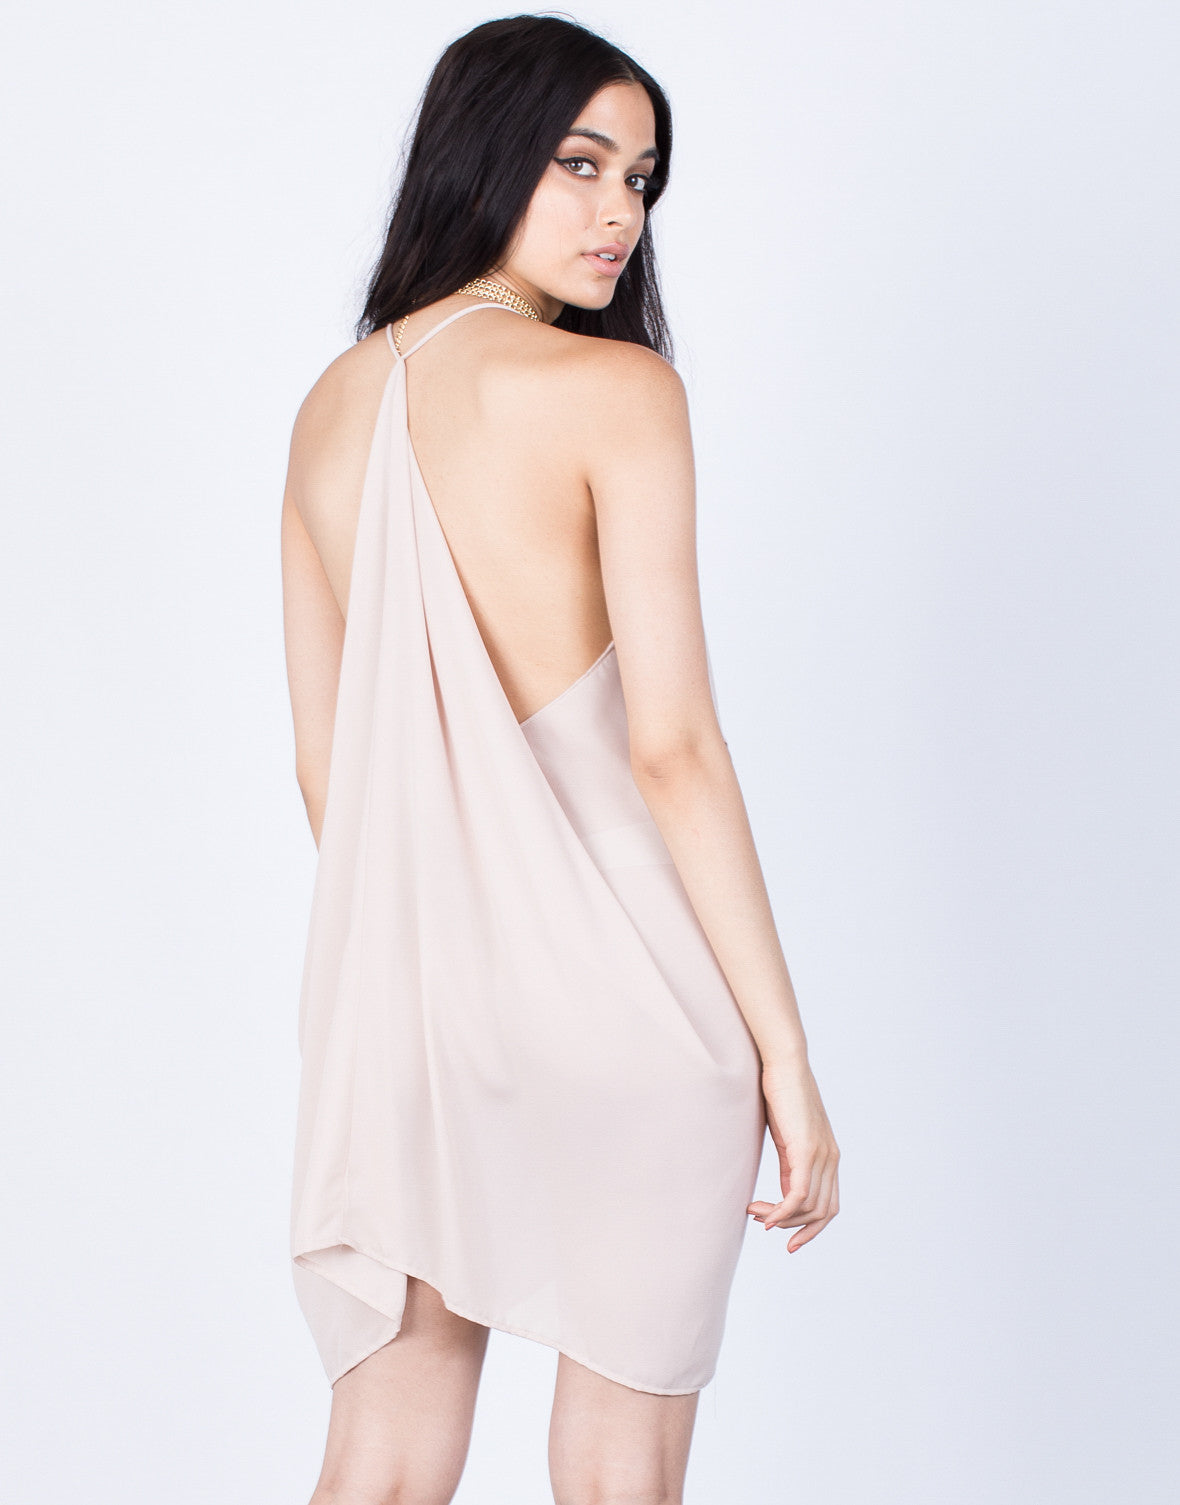 Back View of Full of Flow Dress